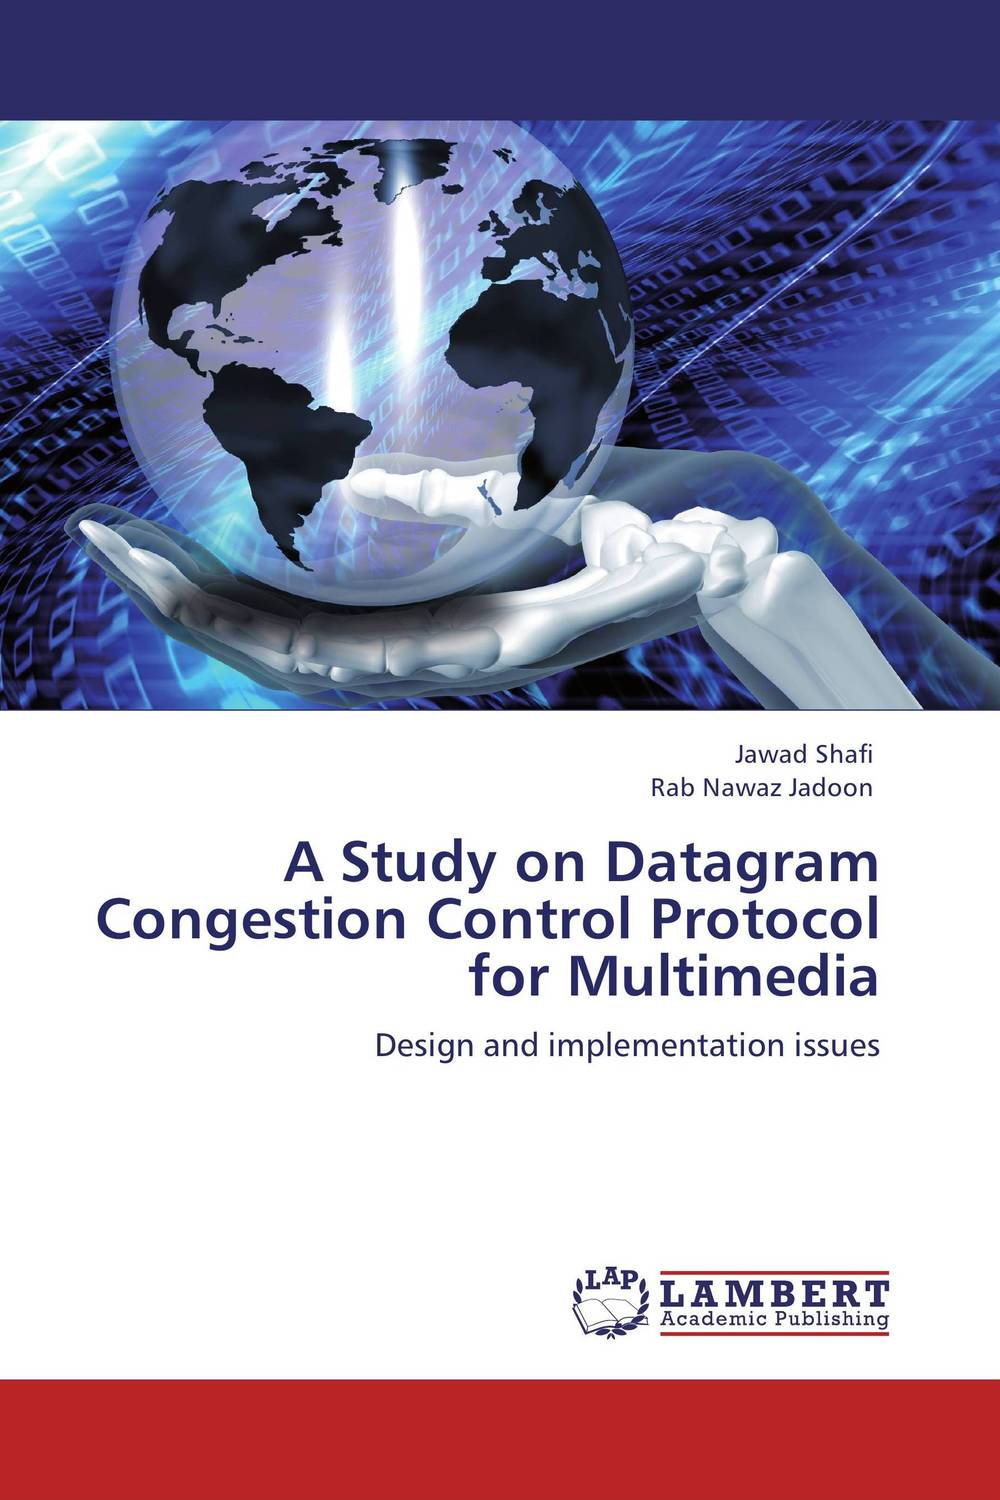 A Study on Datagram Congestion Control Protocol for Multimedia protocol discovery